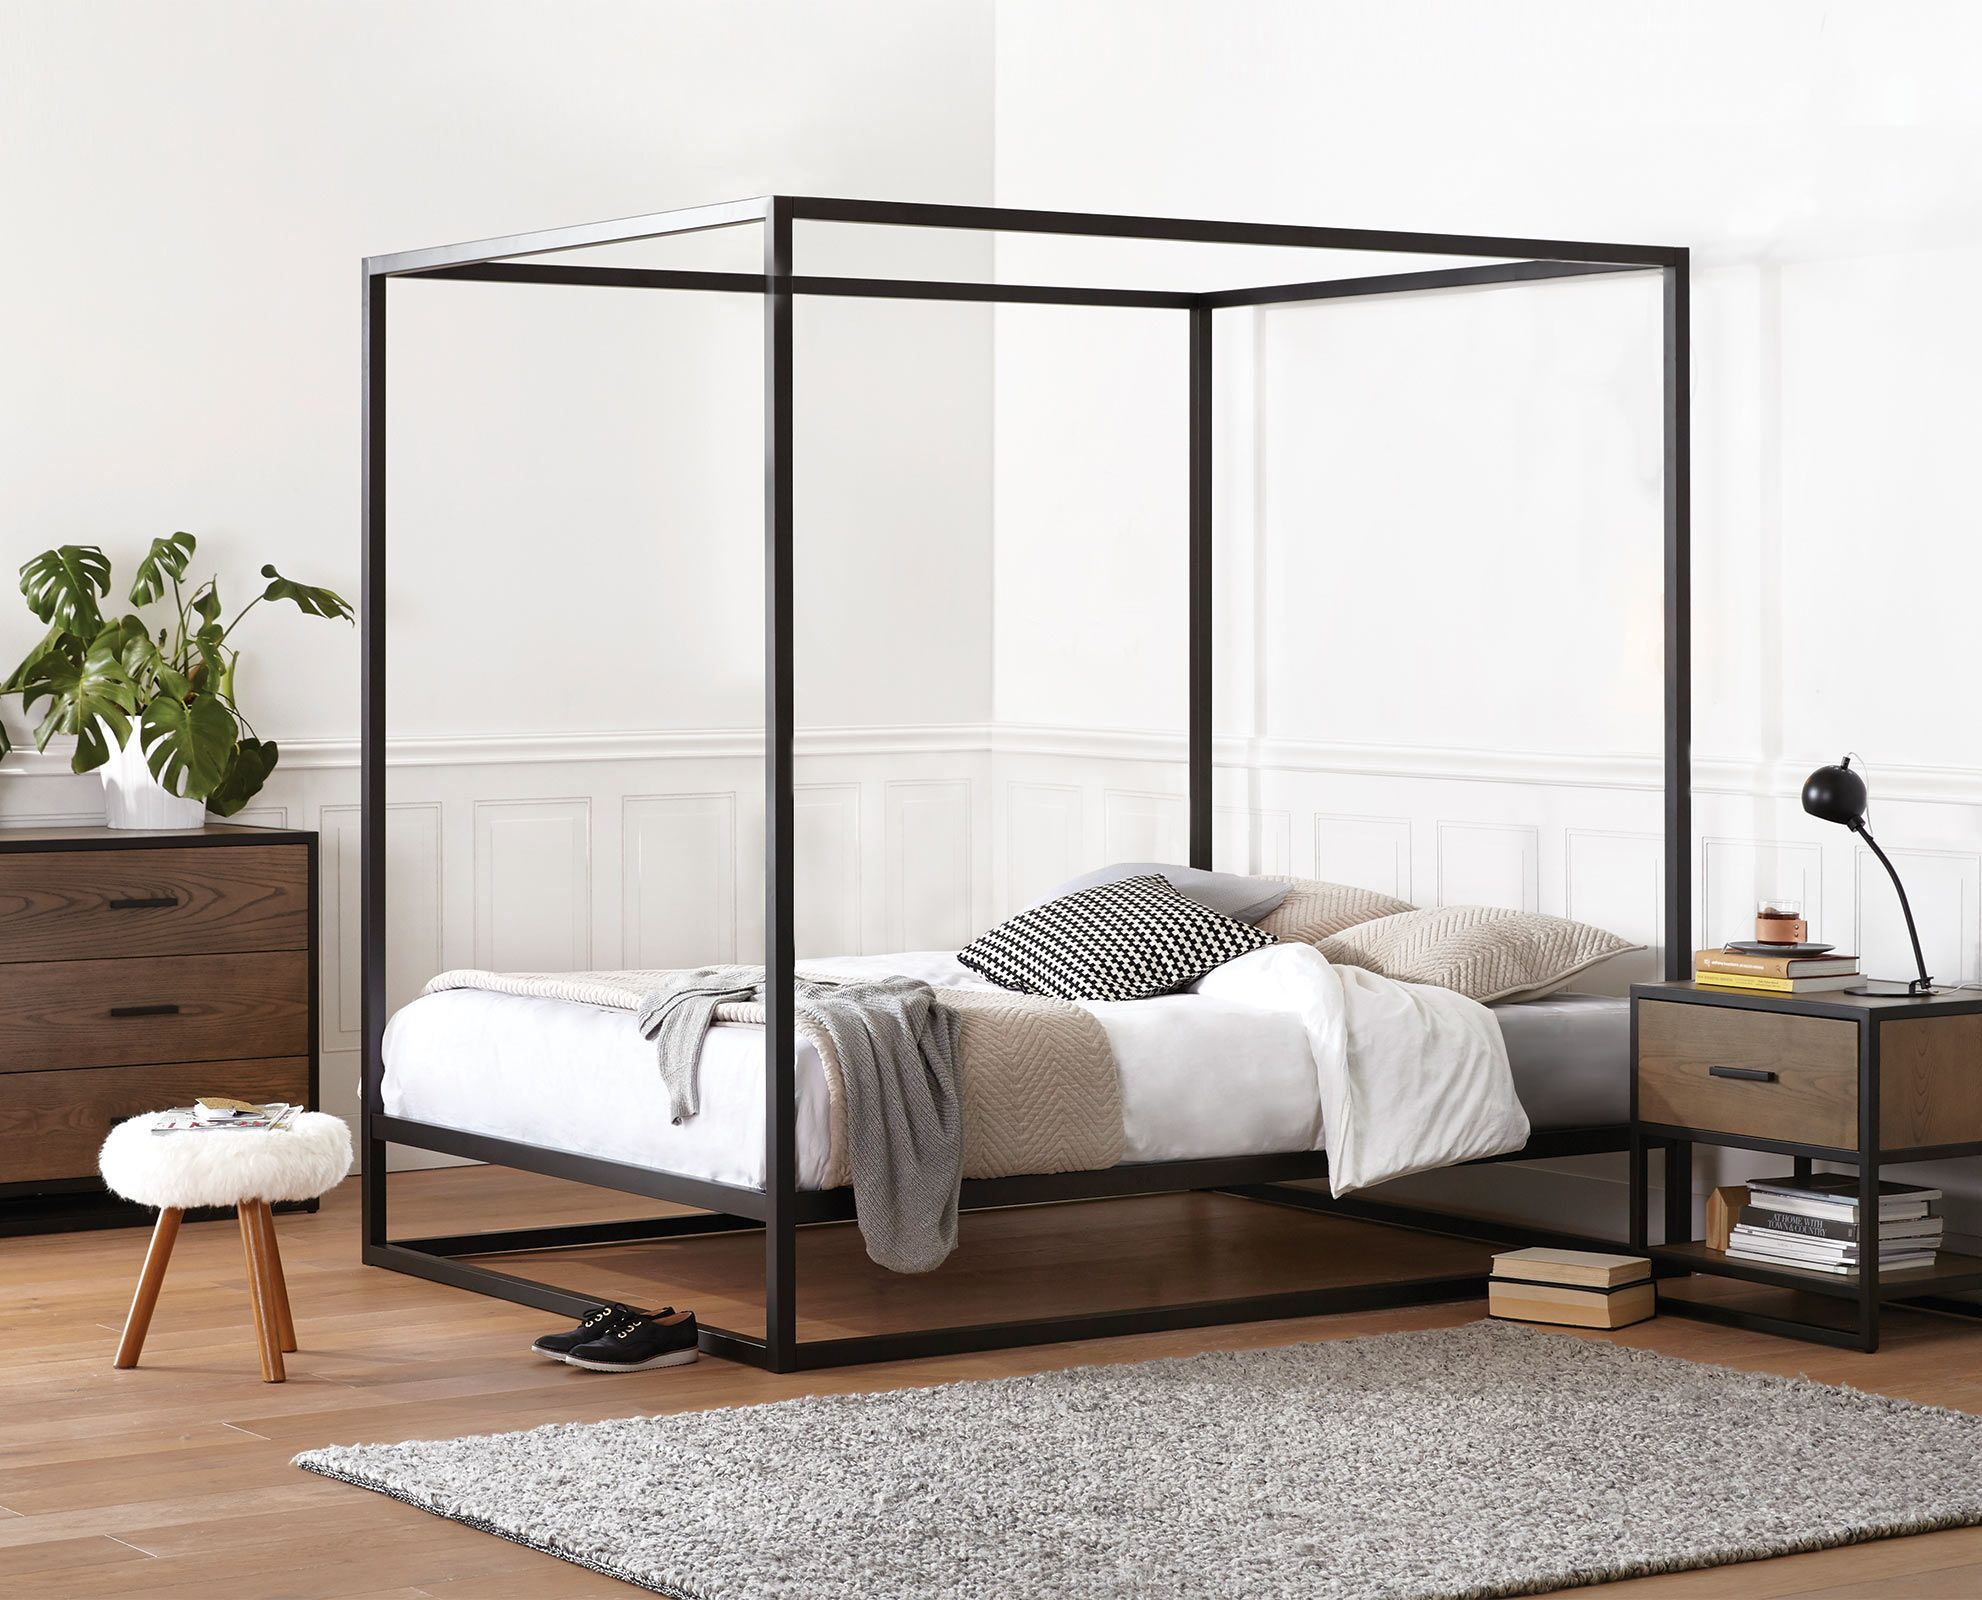 Scandinavian Designs - Enjoy the romantic style of the Oppet canopy bed,  adding height and